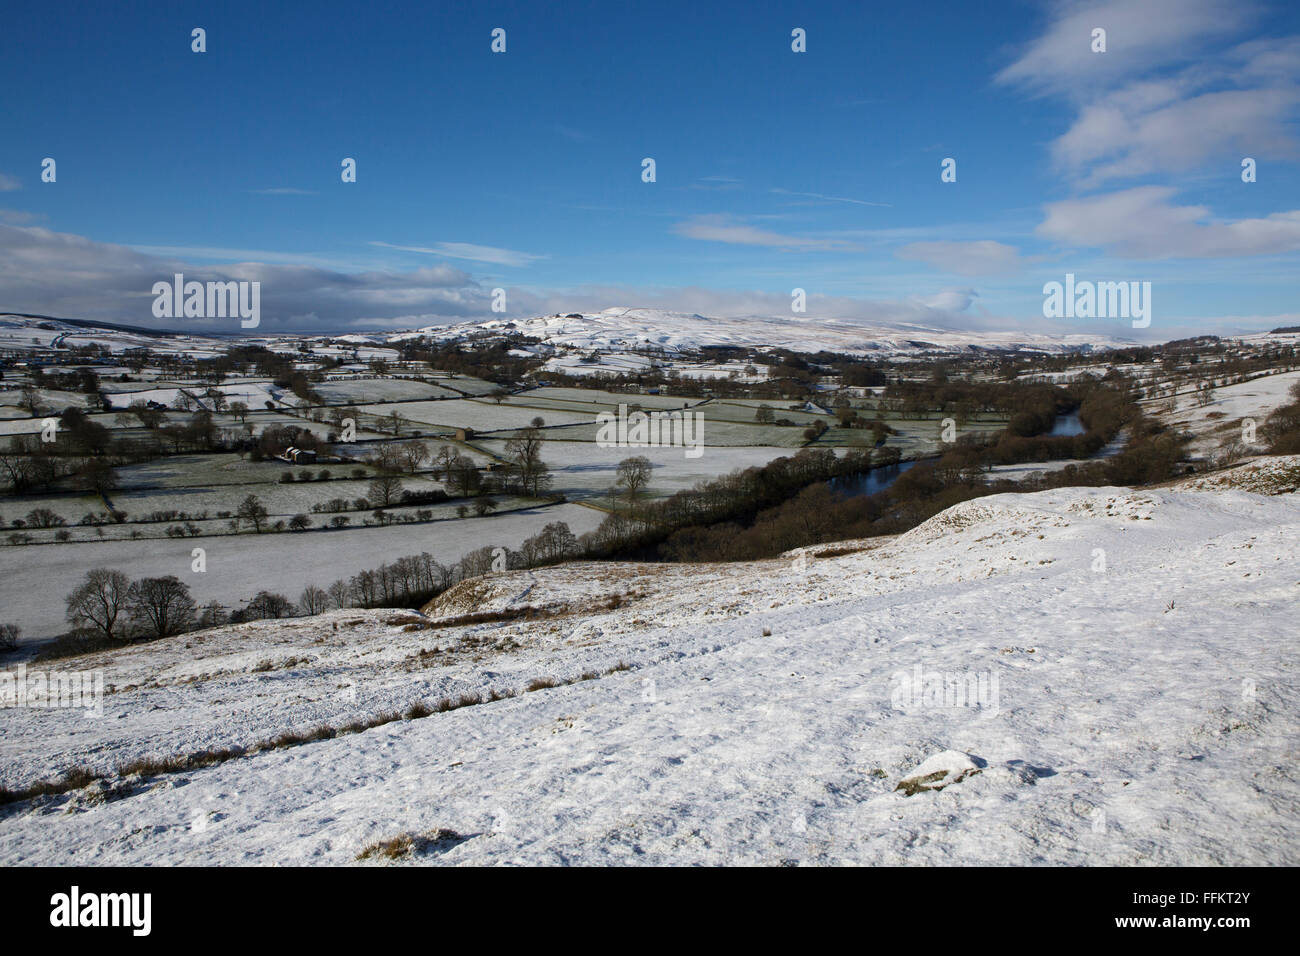 Snowy countryside at Upper Teesdale in County Durham, England. The River Tees runs through the frame. - Stock Image